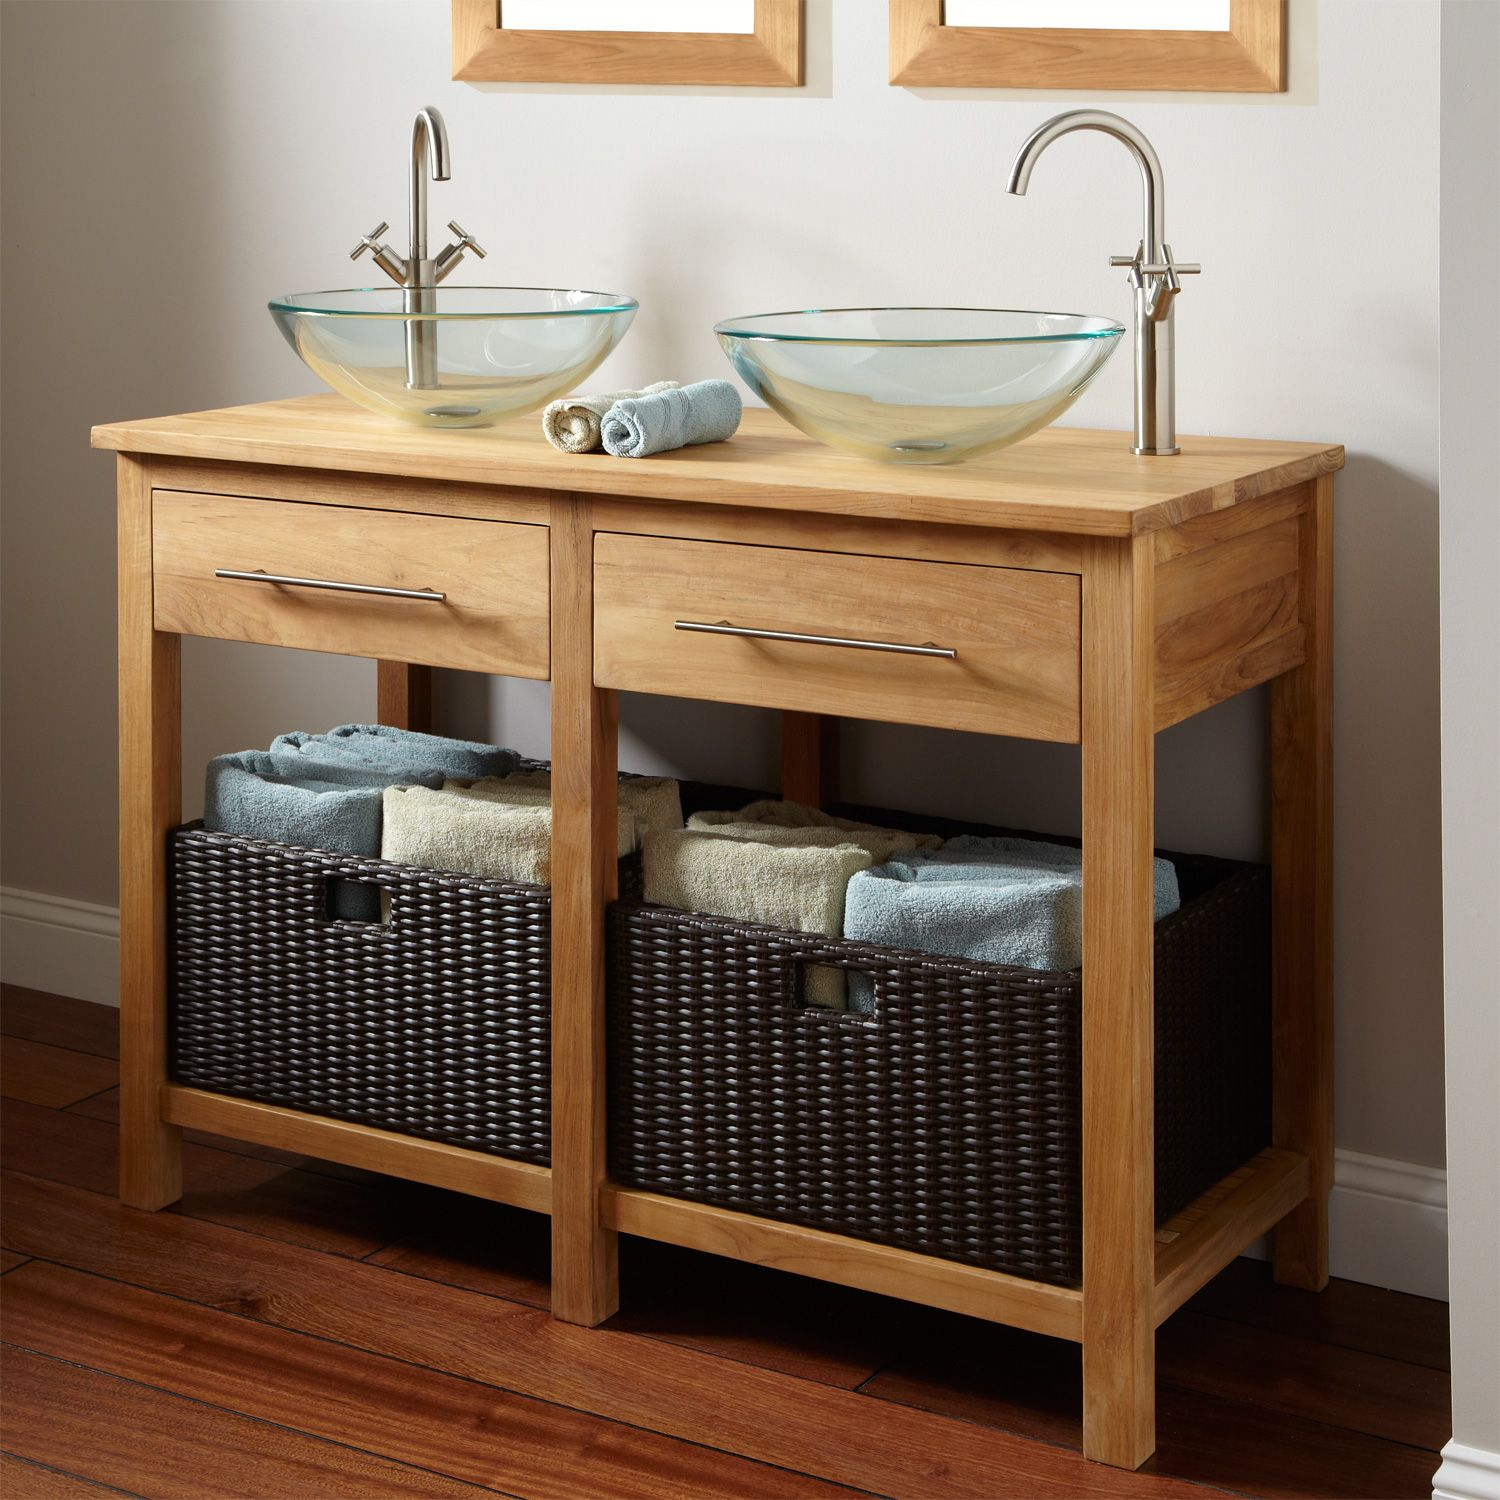 Rustic Bathroom Vanities And Sinks Diy Bathroom Vanity Save Money By Making Your Own Rustic